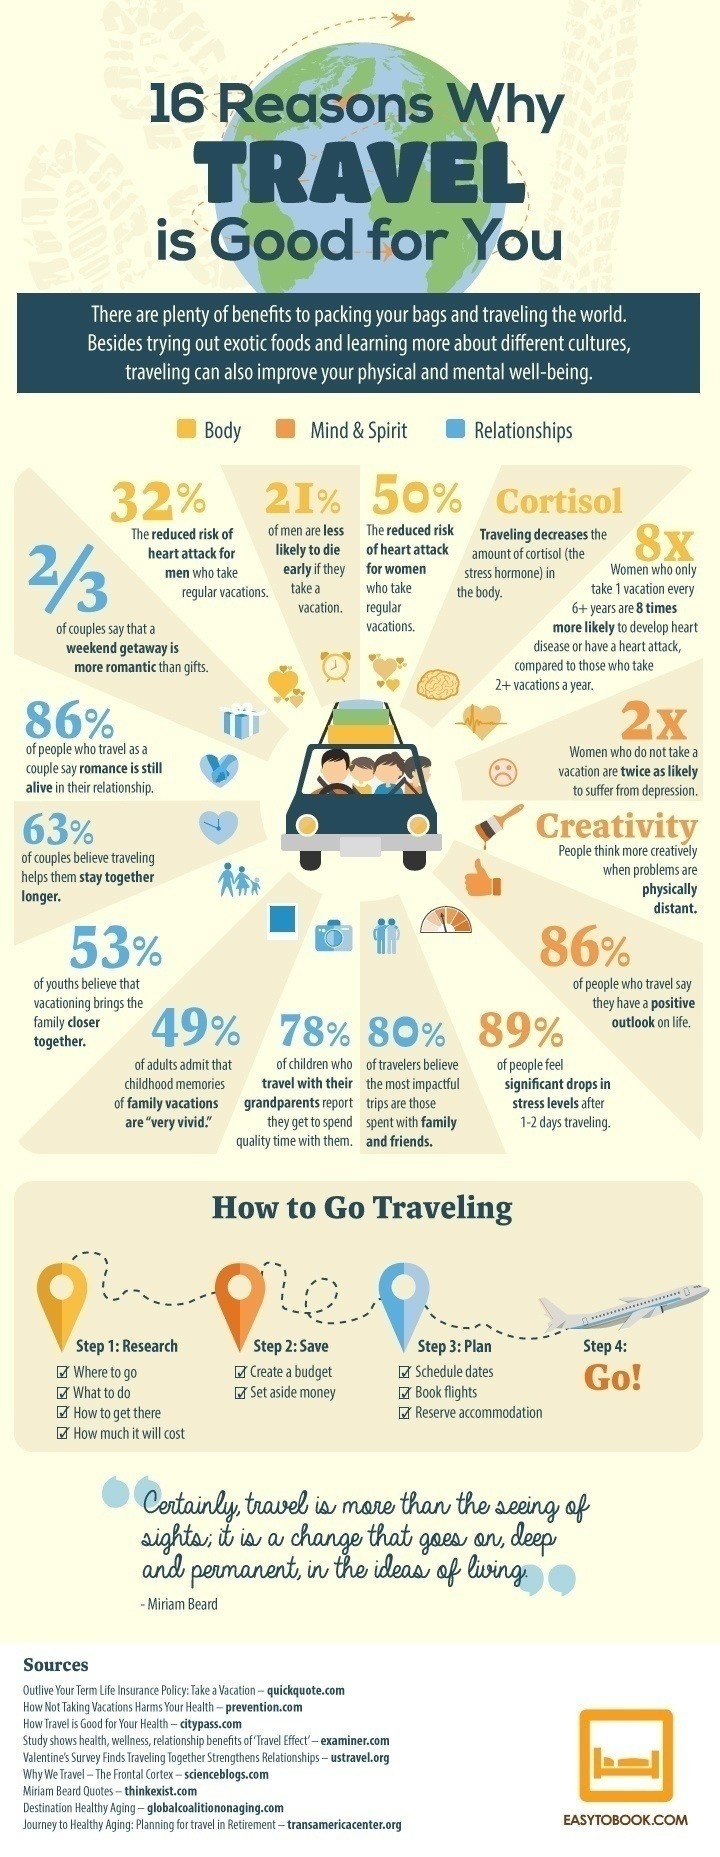 16-Reasons-Why-Traveling-is-Good-for-You